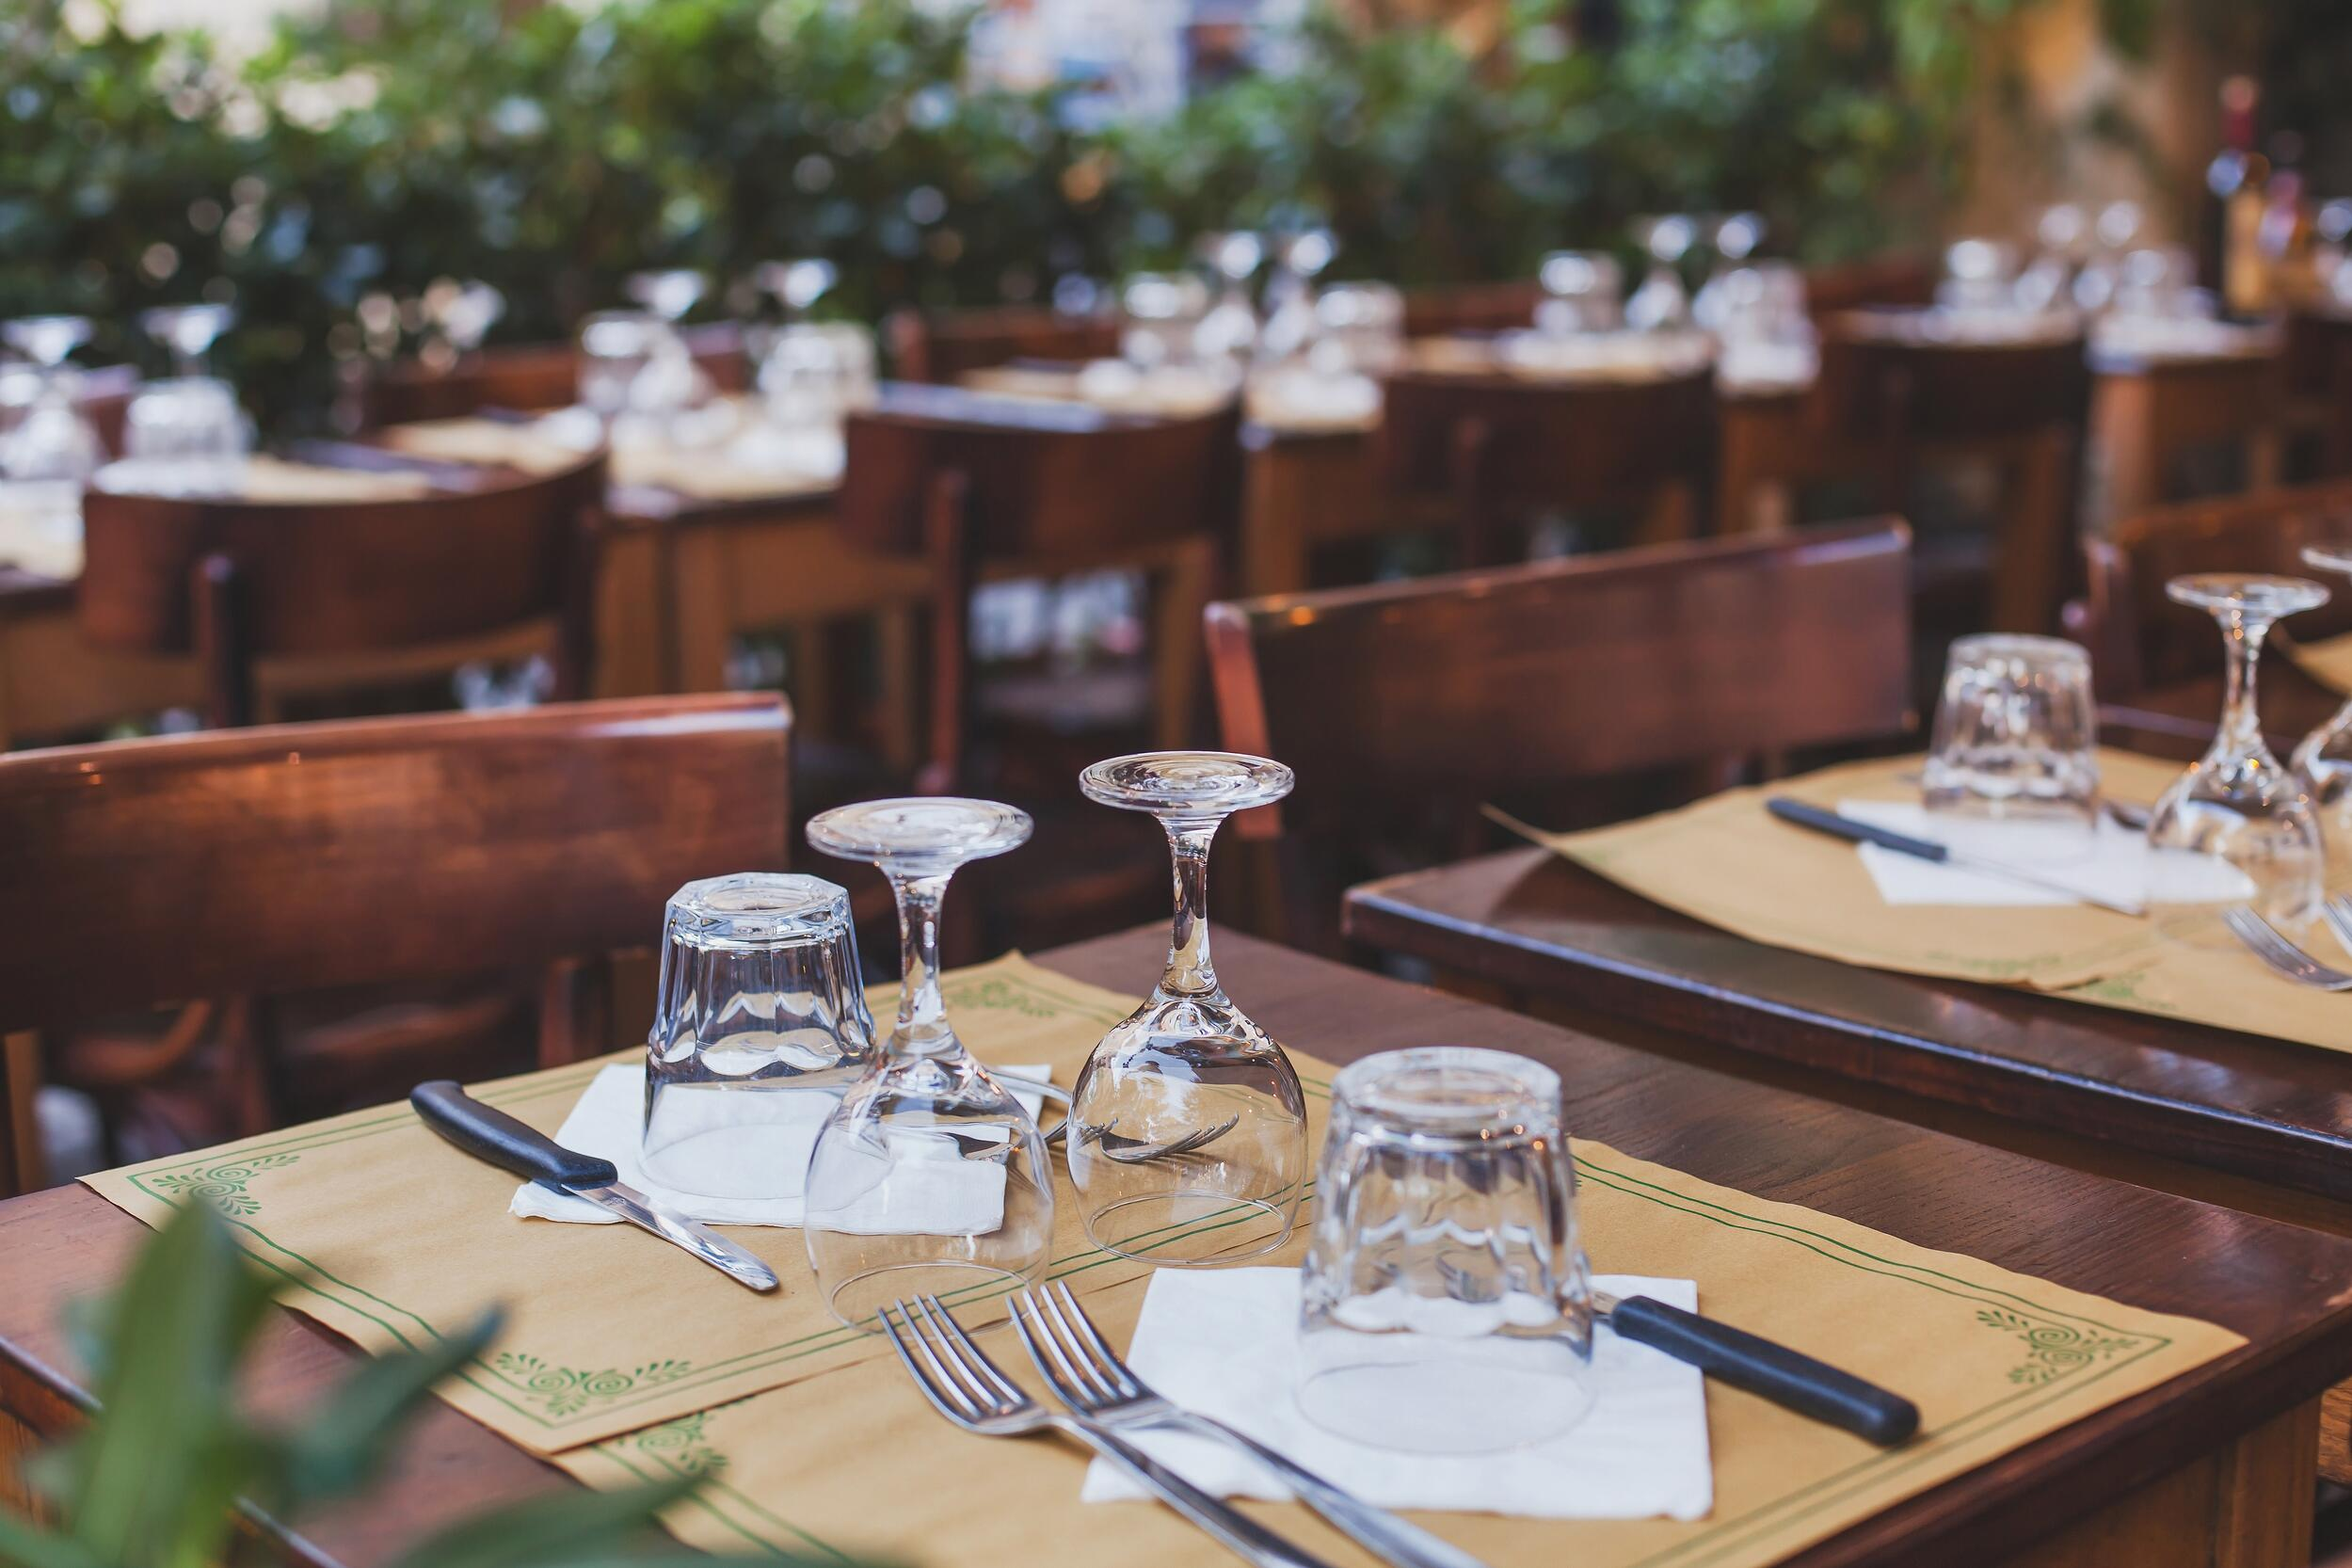 3 Business tips for new restaurant owners